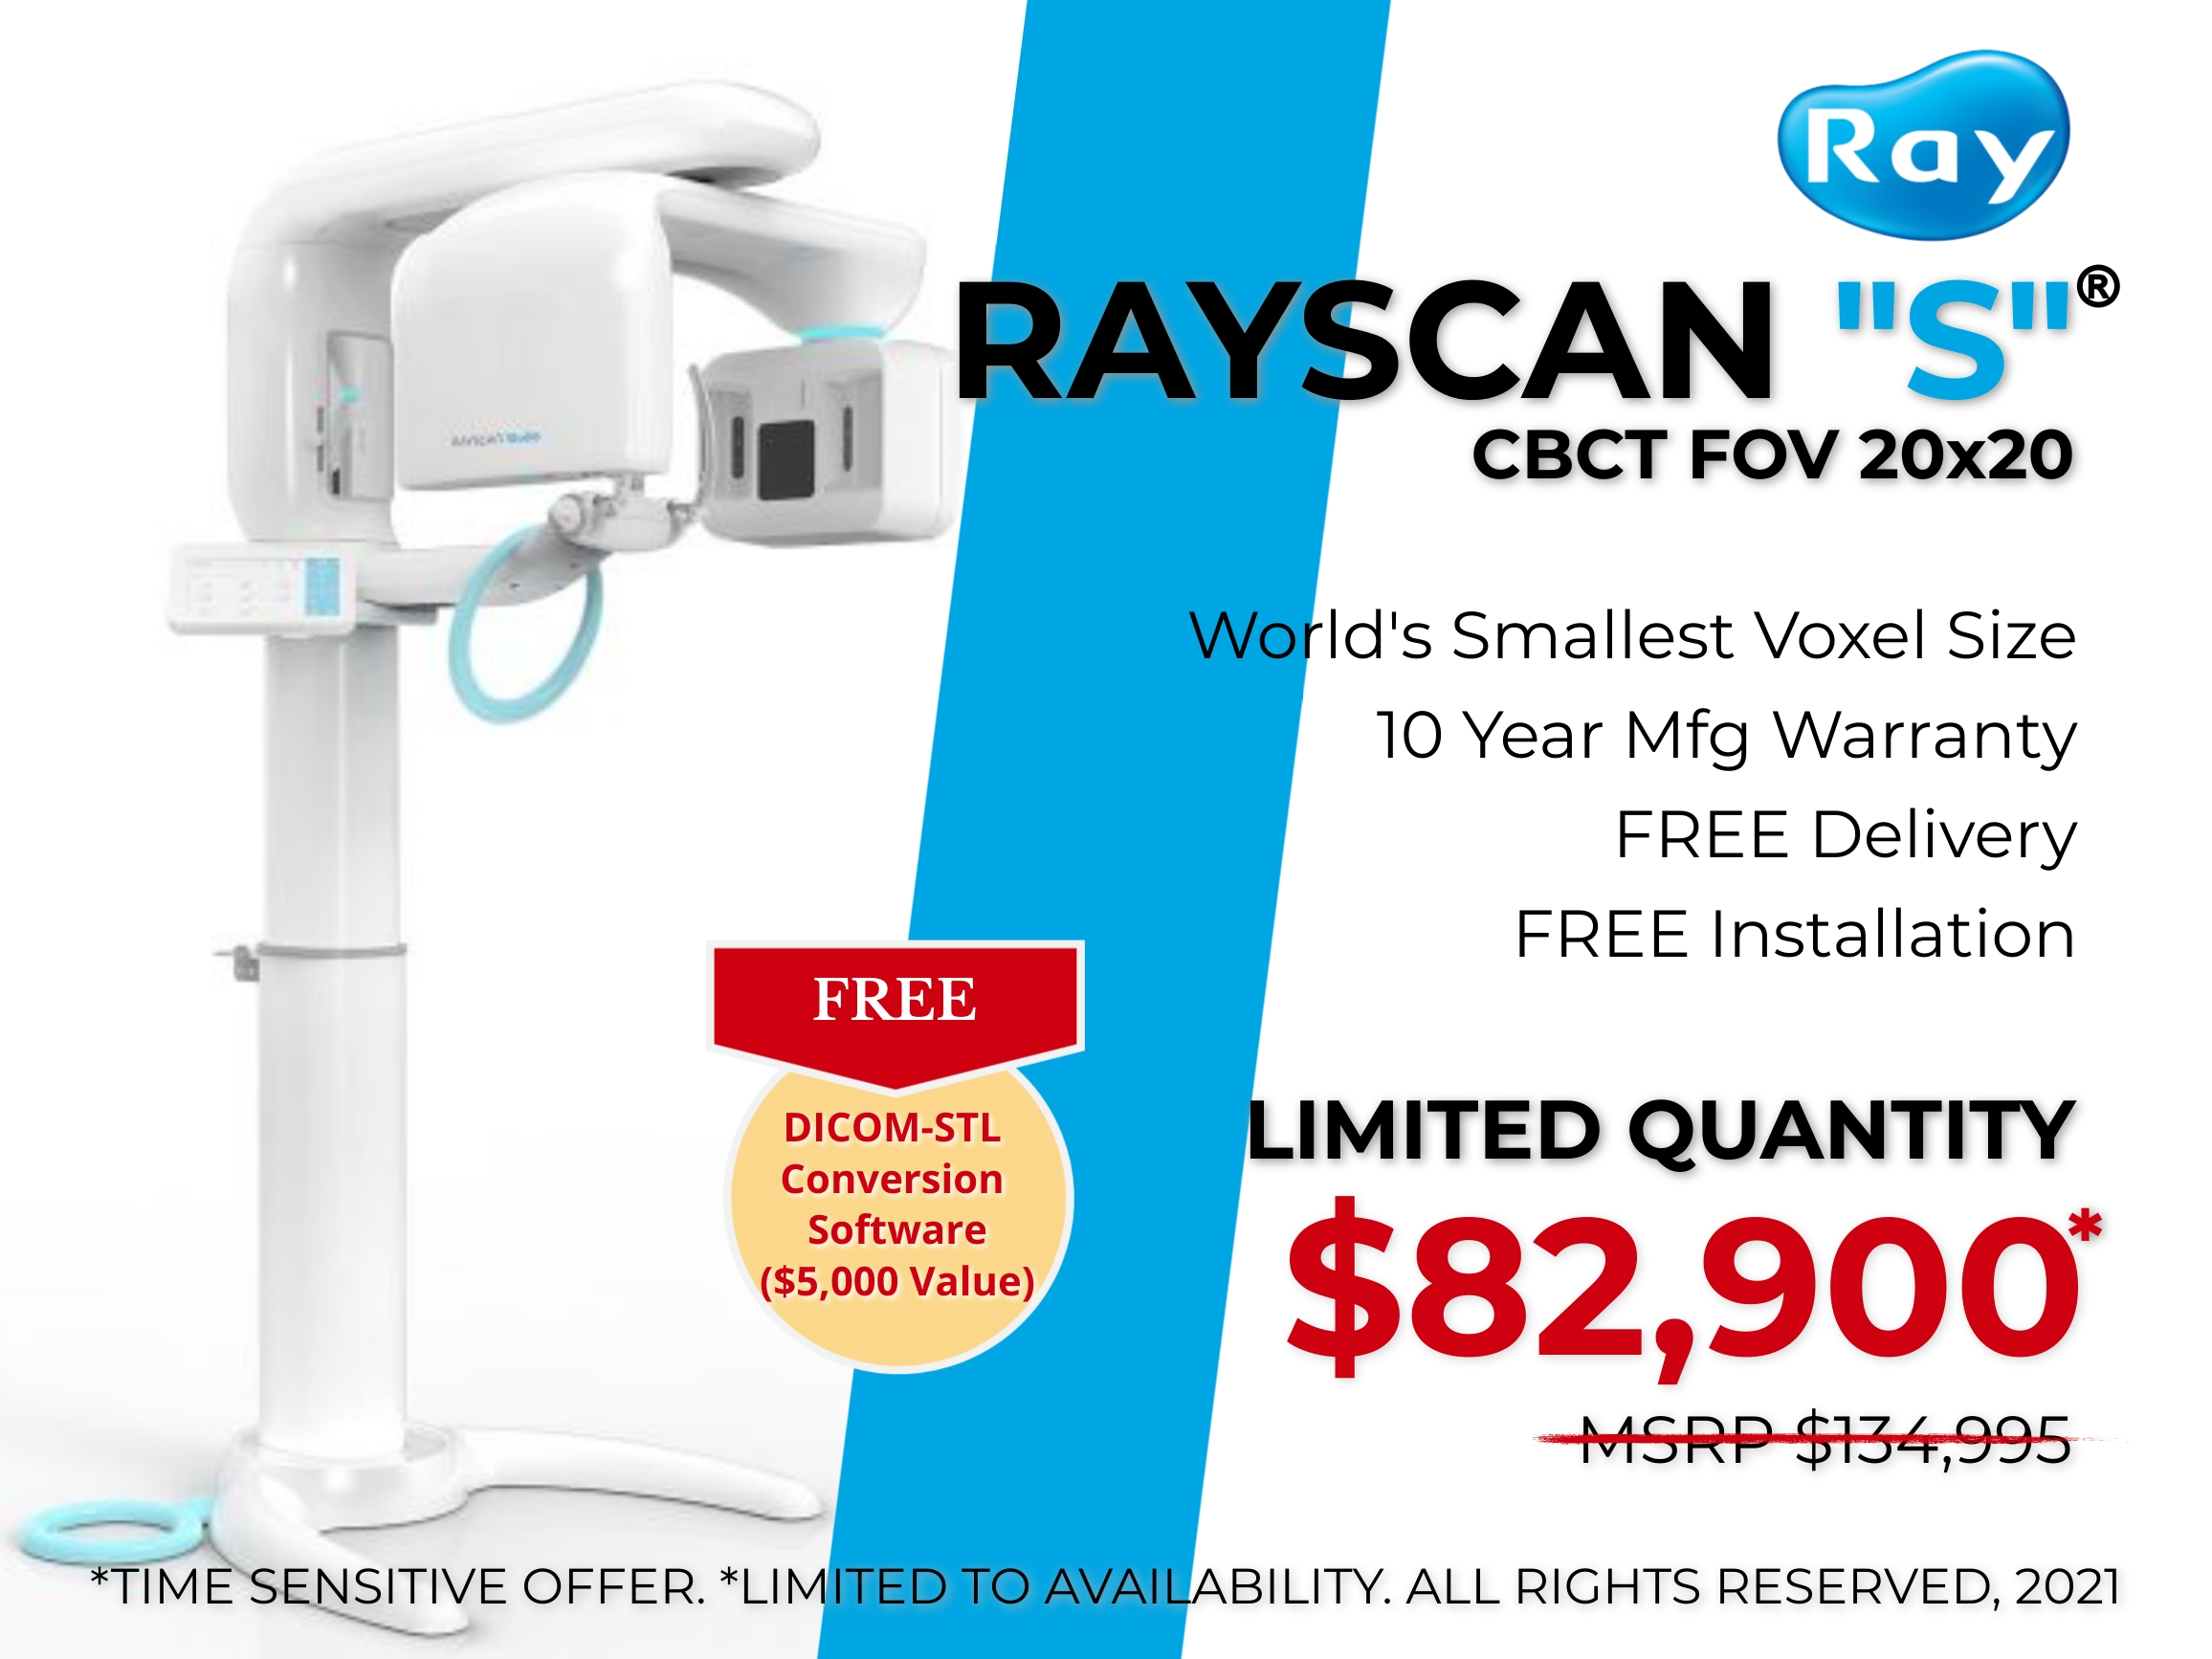 """ray, rayscan, rayamerica, cbct, s, """"s"""", rayscans, rayscan s, model, model s, 20x20, fov, airway, implant, tmj, endo, µm, smallest, largest, fastest, cheapest, low, free, best, near me, cbct, x-ray, free installation, free delivery, warranty, 10 years, rayguard, 24/7, 2020, 2021, now, too late"""